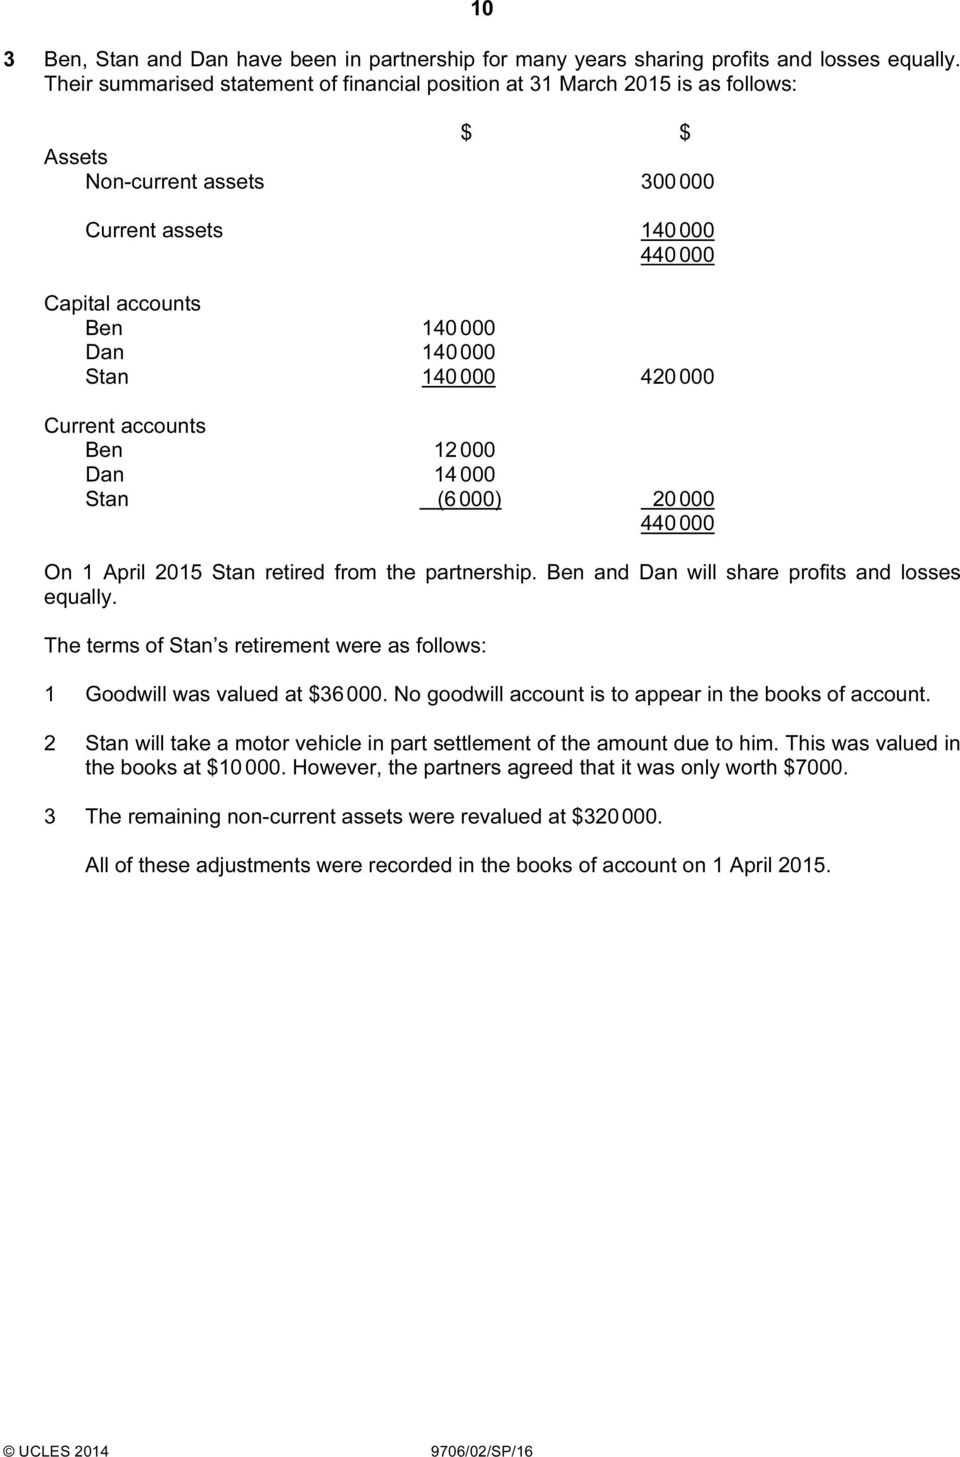 000 420 000 Current accounts Ben 12 000 Dan 14 000 Stan (6 000) 20 000 440 000 On 1 April 2015 Stan retired from the partnership. Ben and Dan will share profits and losses equally.